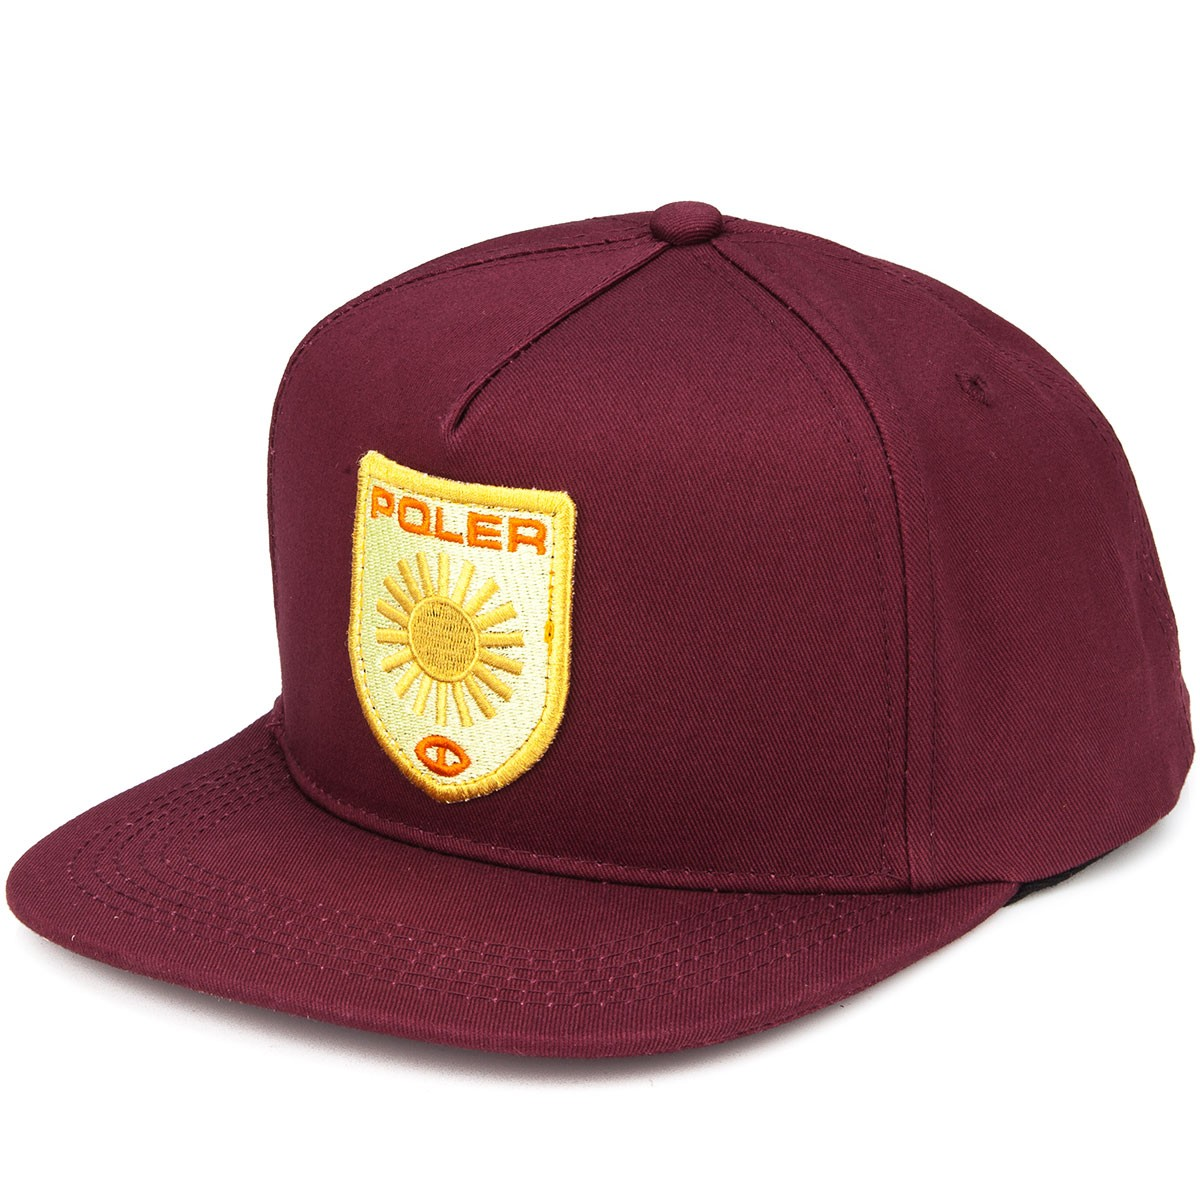 Poler D Patches Snapback Hat - Sweet Berry Wine